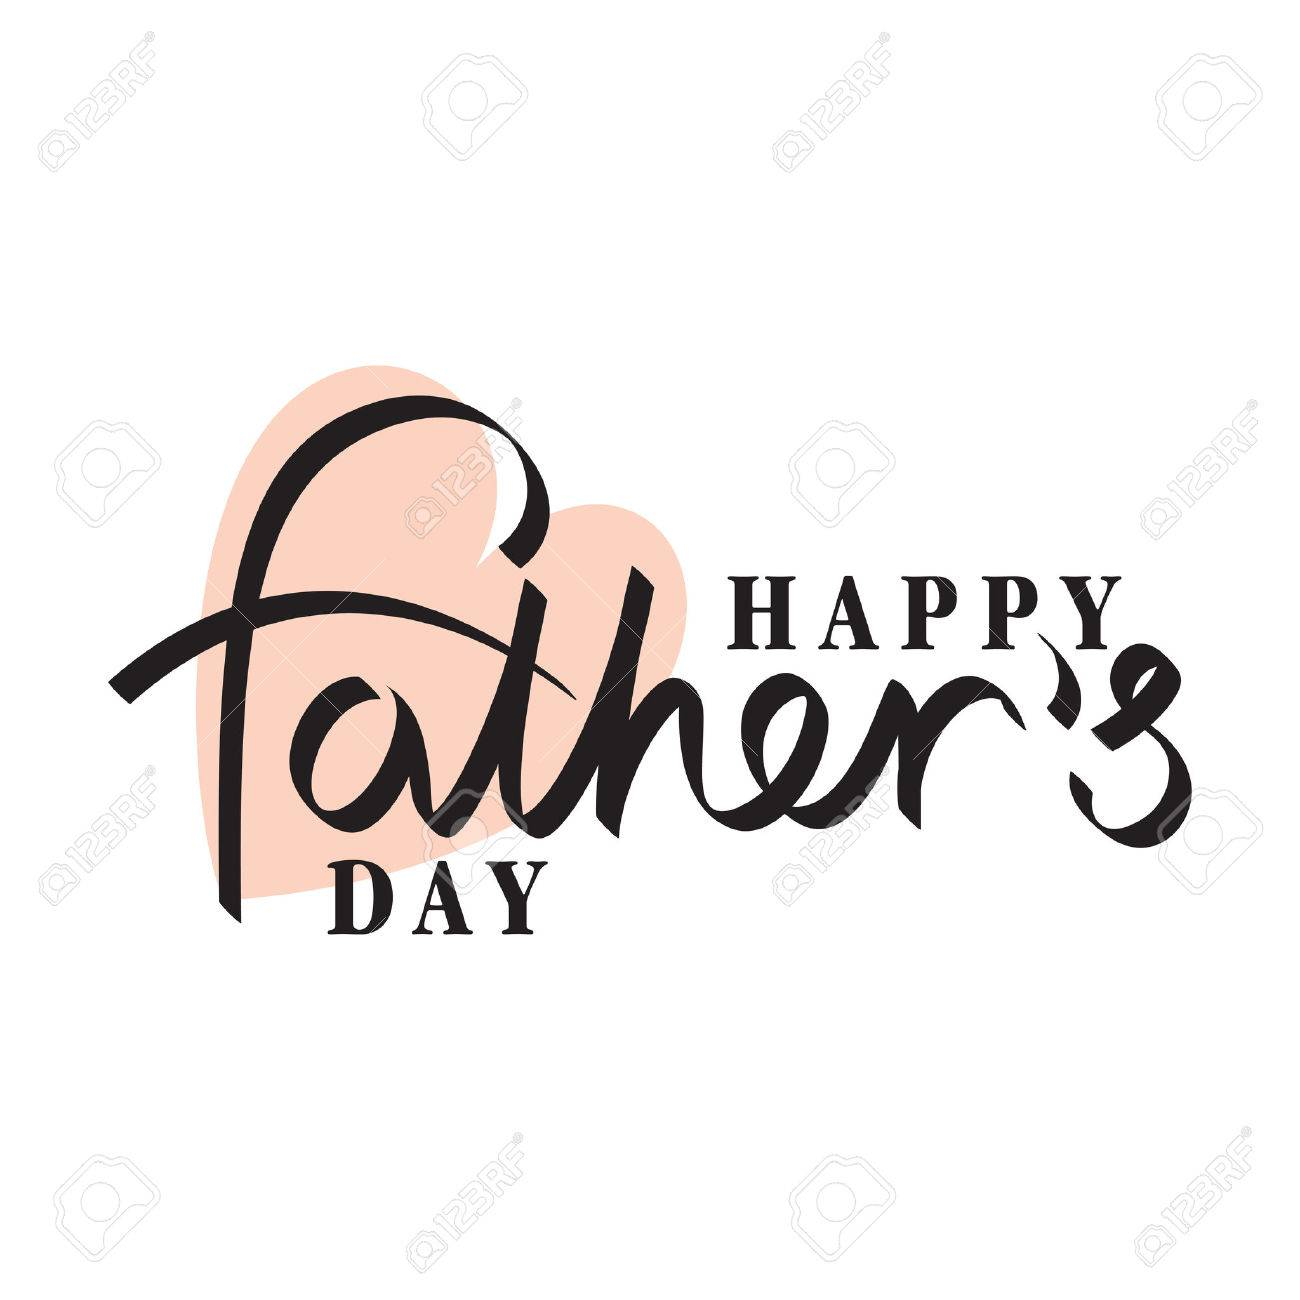 Happy fathers day free clipart 4 » Clipart Station.